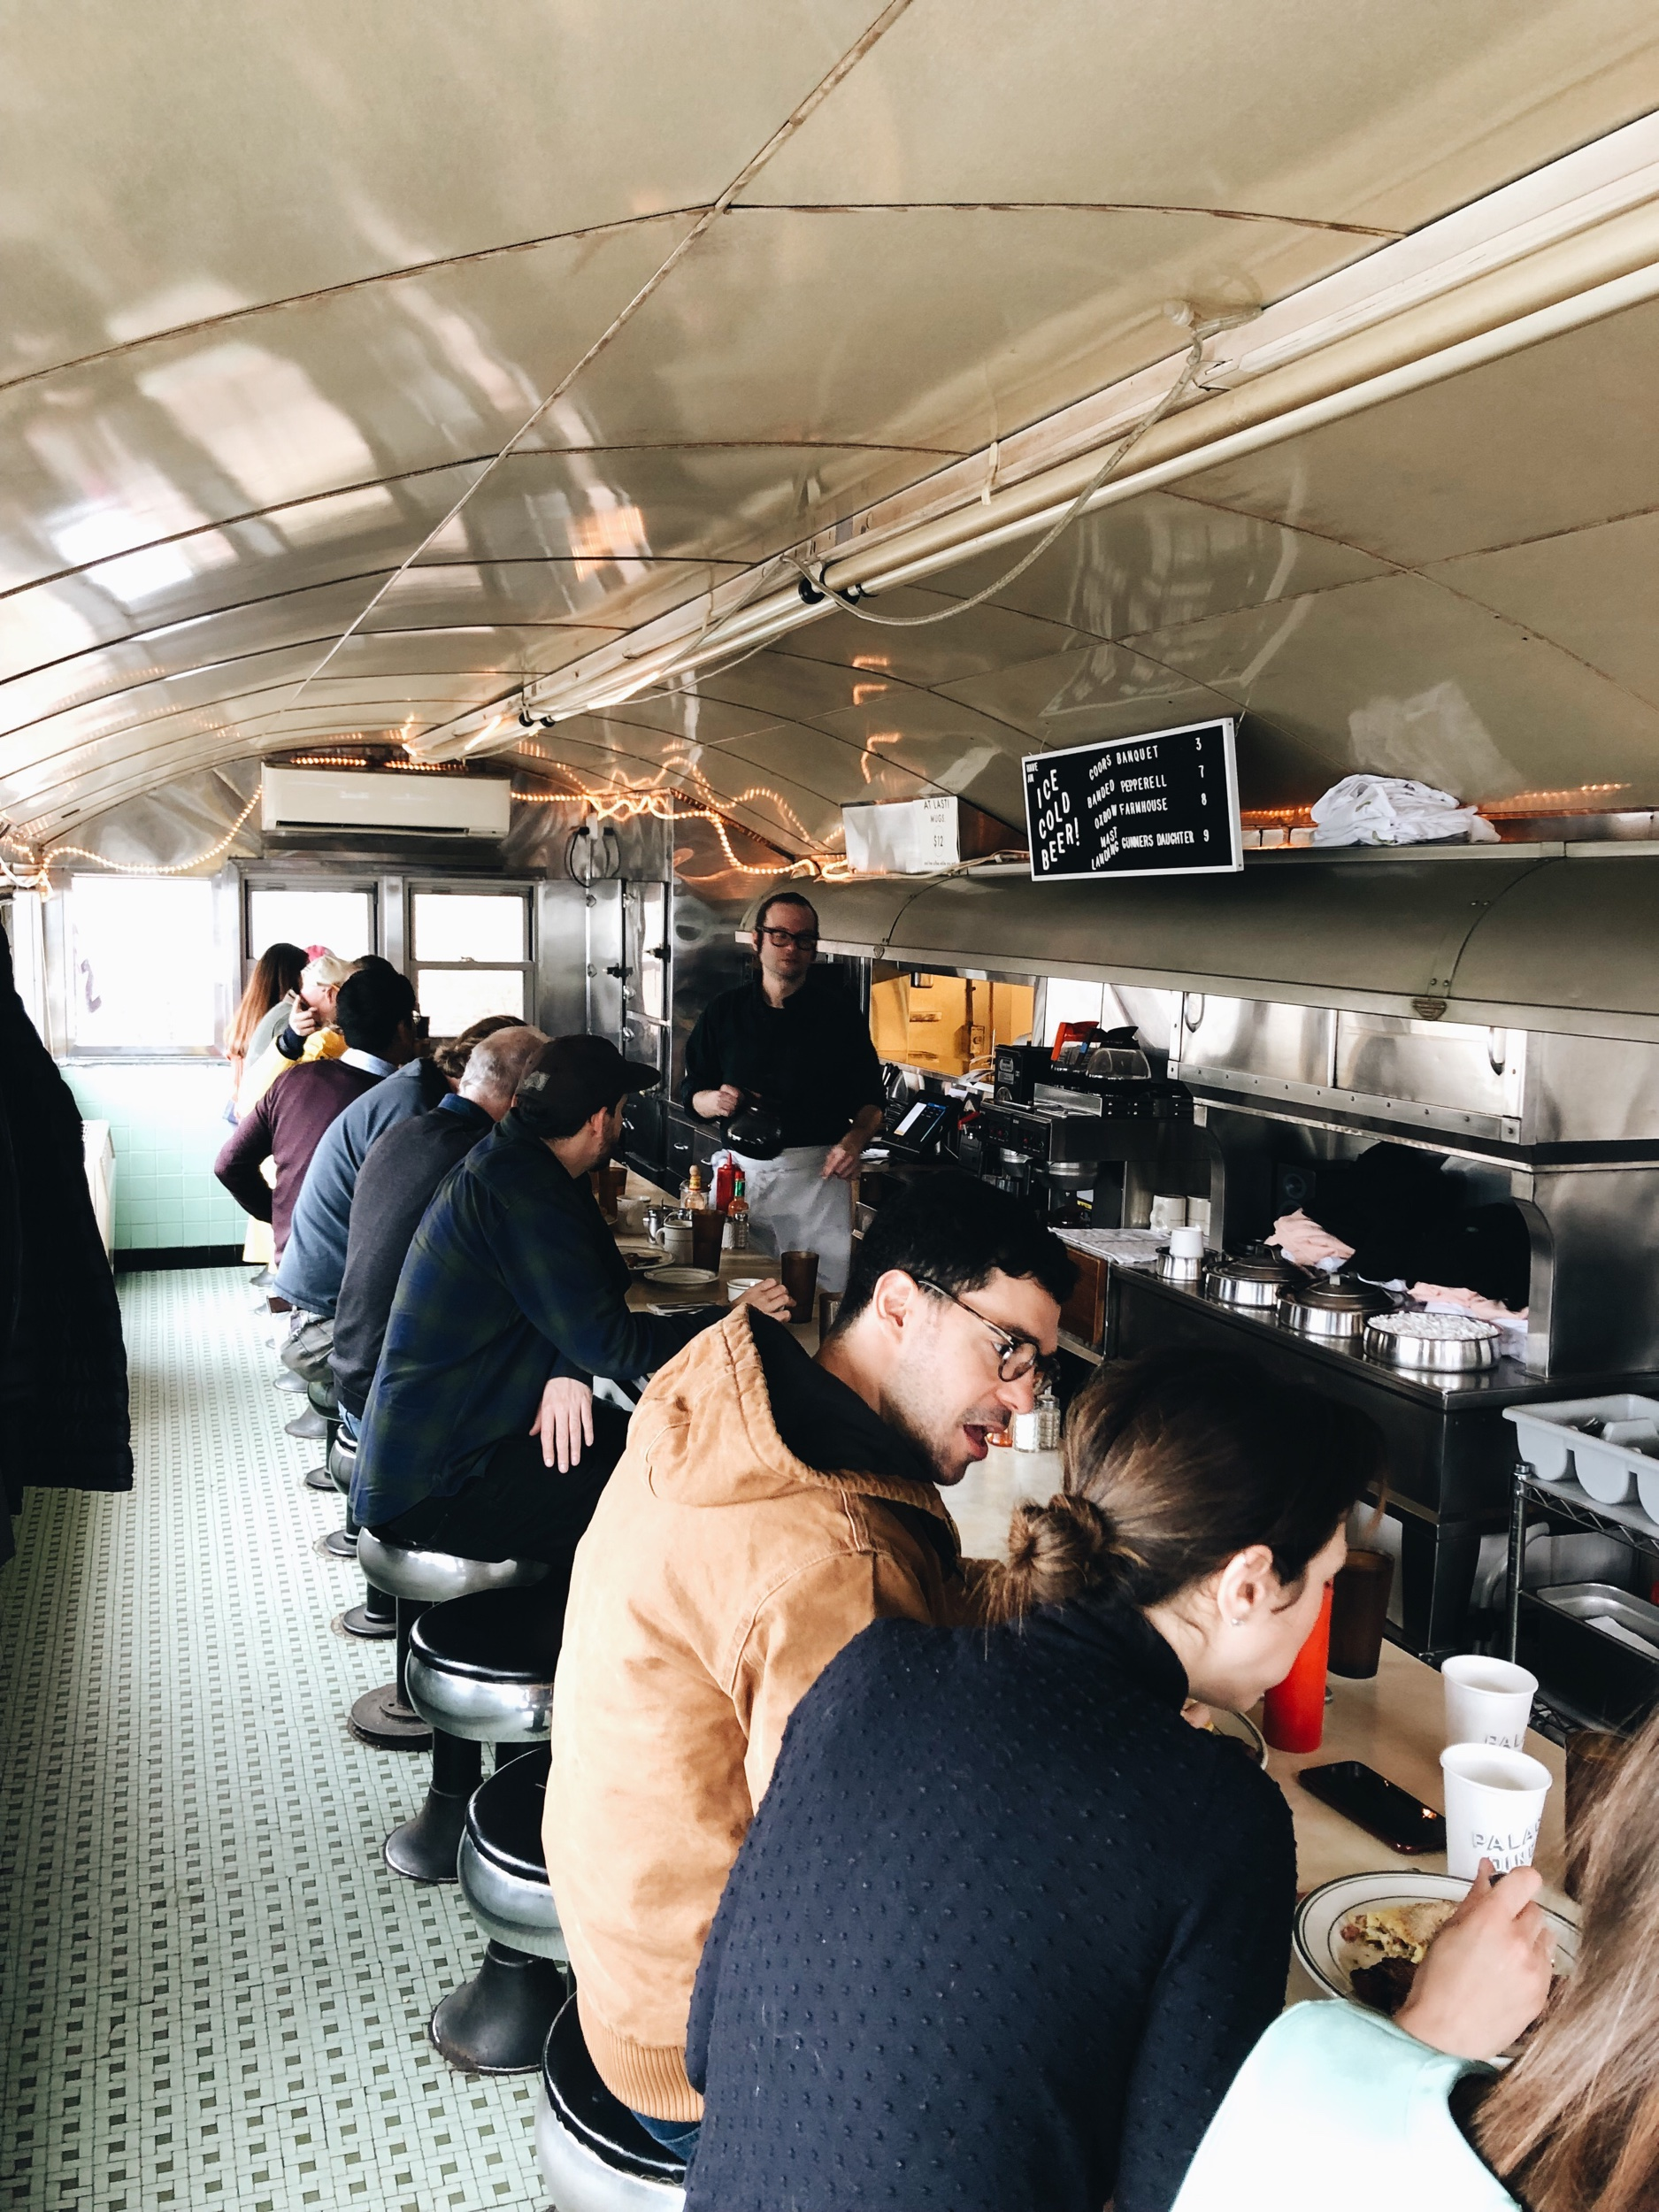 Inside the train-car restaurant, Palace Diner